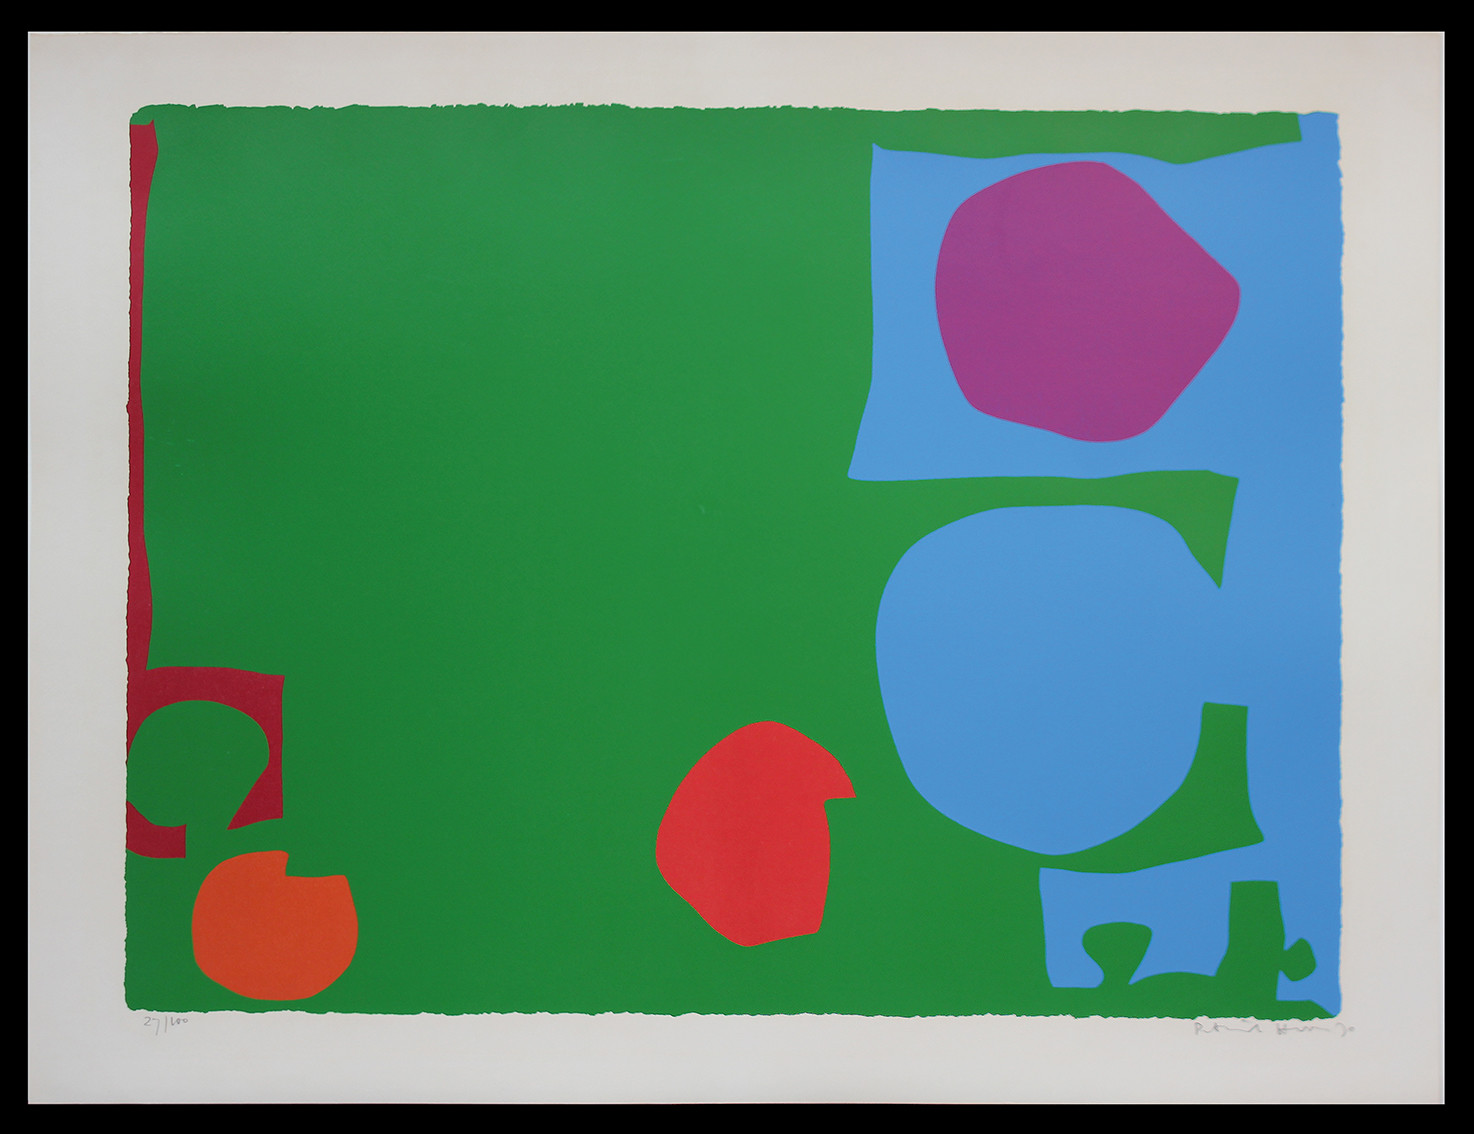 <span class=&#34;link fancybox-details-link&#34;><a href=&#34;/artists/93-patrick-heron-cbe/works/3807-patrick-heron-cbe-three-reds-in-green-and-magenta-in-blue-1970/&#34;>View Detail Page</a></span><div class=&#34;artist&#34;><strong>Patrick Heron CBE</strong></div> 1920 – 1999 <div class=&#34;title&#34;><em>Three Reds in Green and Magenta in Blue: April 1970</em>, 1970</div> <div class=&#34;signed_and_dated&#34;>signed and dated in pencil</div> <div class=&#34;medium&#34;>silkscreen print in colours on wove paper, with full margins</div> <div class=&#34;dimensions&#34;>image size: 59.7 x 78.4 <br /> sheet: 70 x 91 cm (27 1/2 x 35 7/8 in.)</div> <div class=&#34;edition_details&#34;>Edition 27 of 100</div><div class=&#34;copyright_line&#34;>© The Estate of Patrick Heron</div>